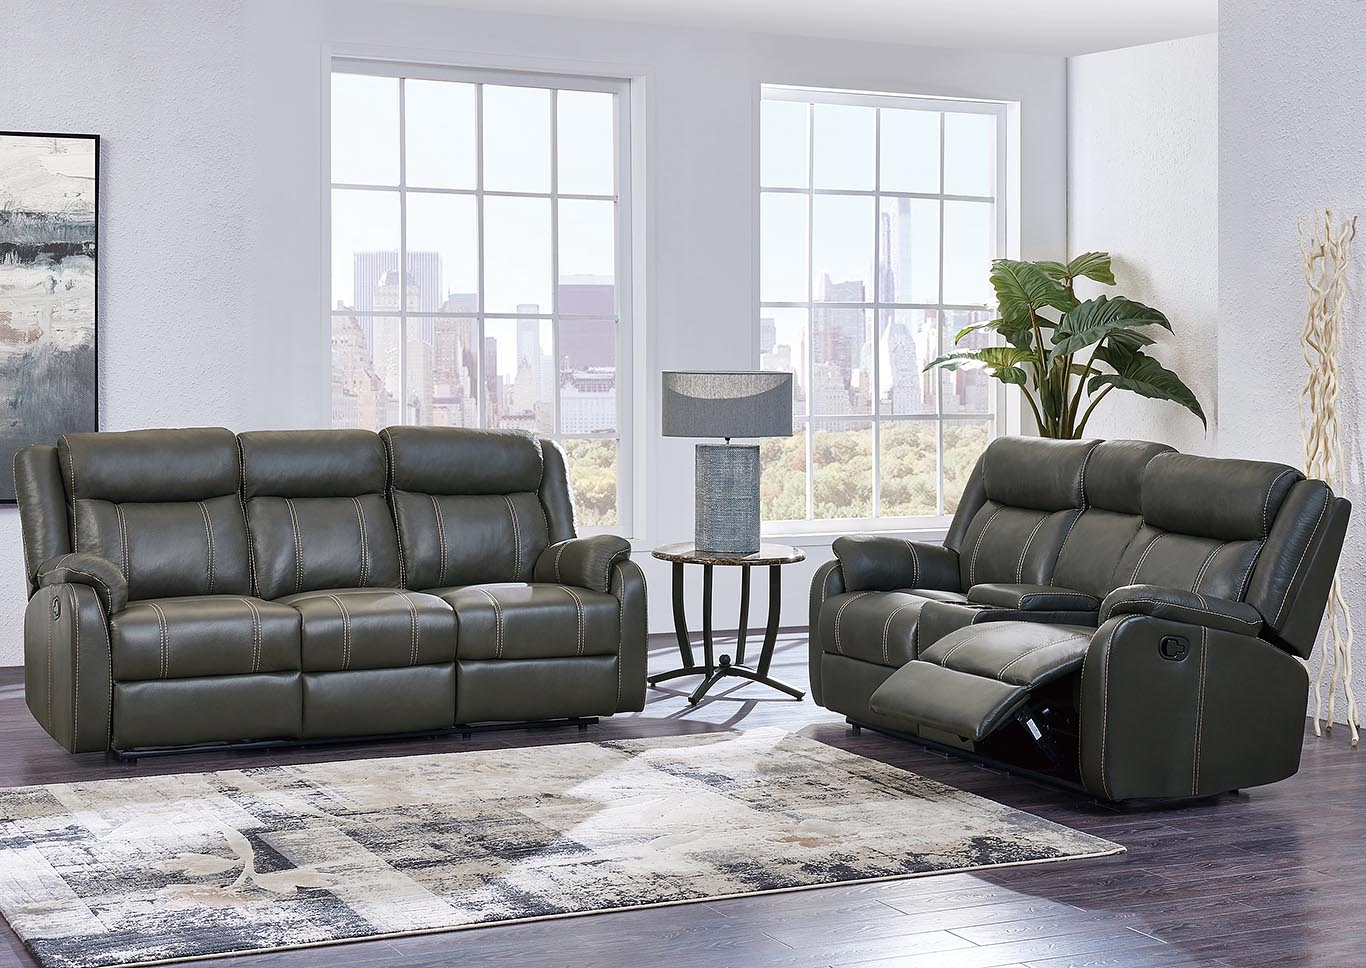 Gin Rummy Charcoal Reclining Sofa & Loveseat w/Console, Drop-Down Table & Drawer,Global Furniture USA